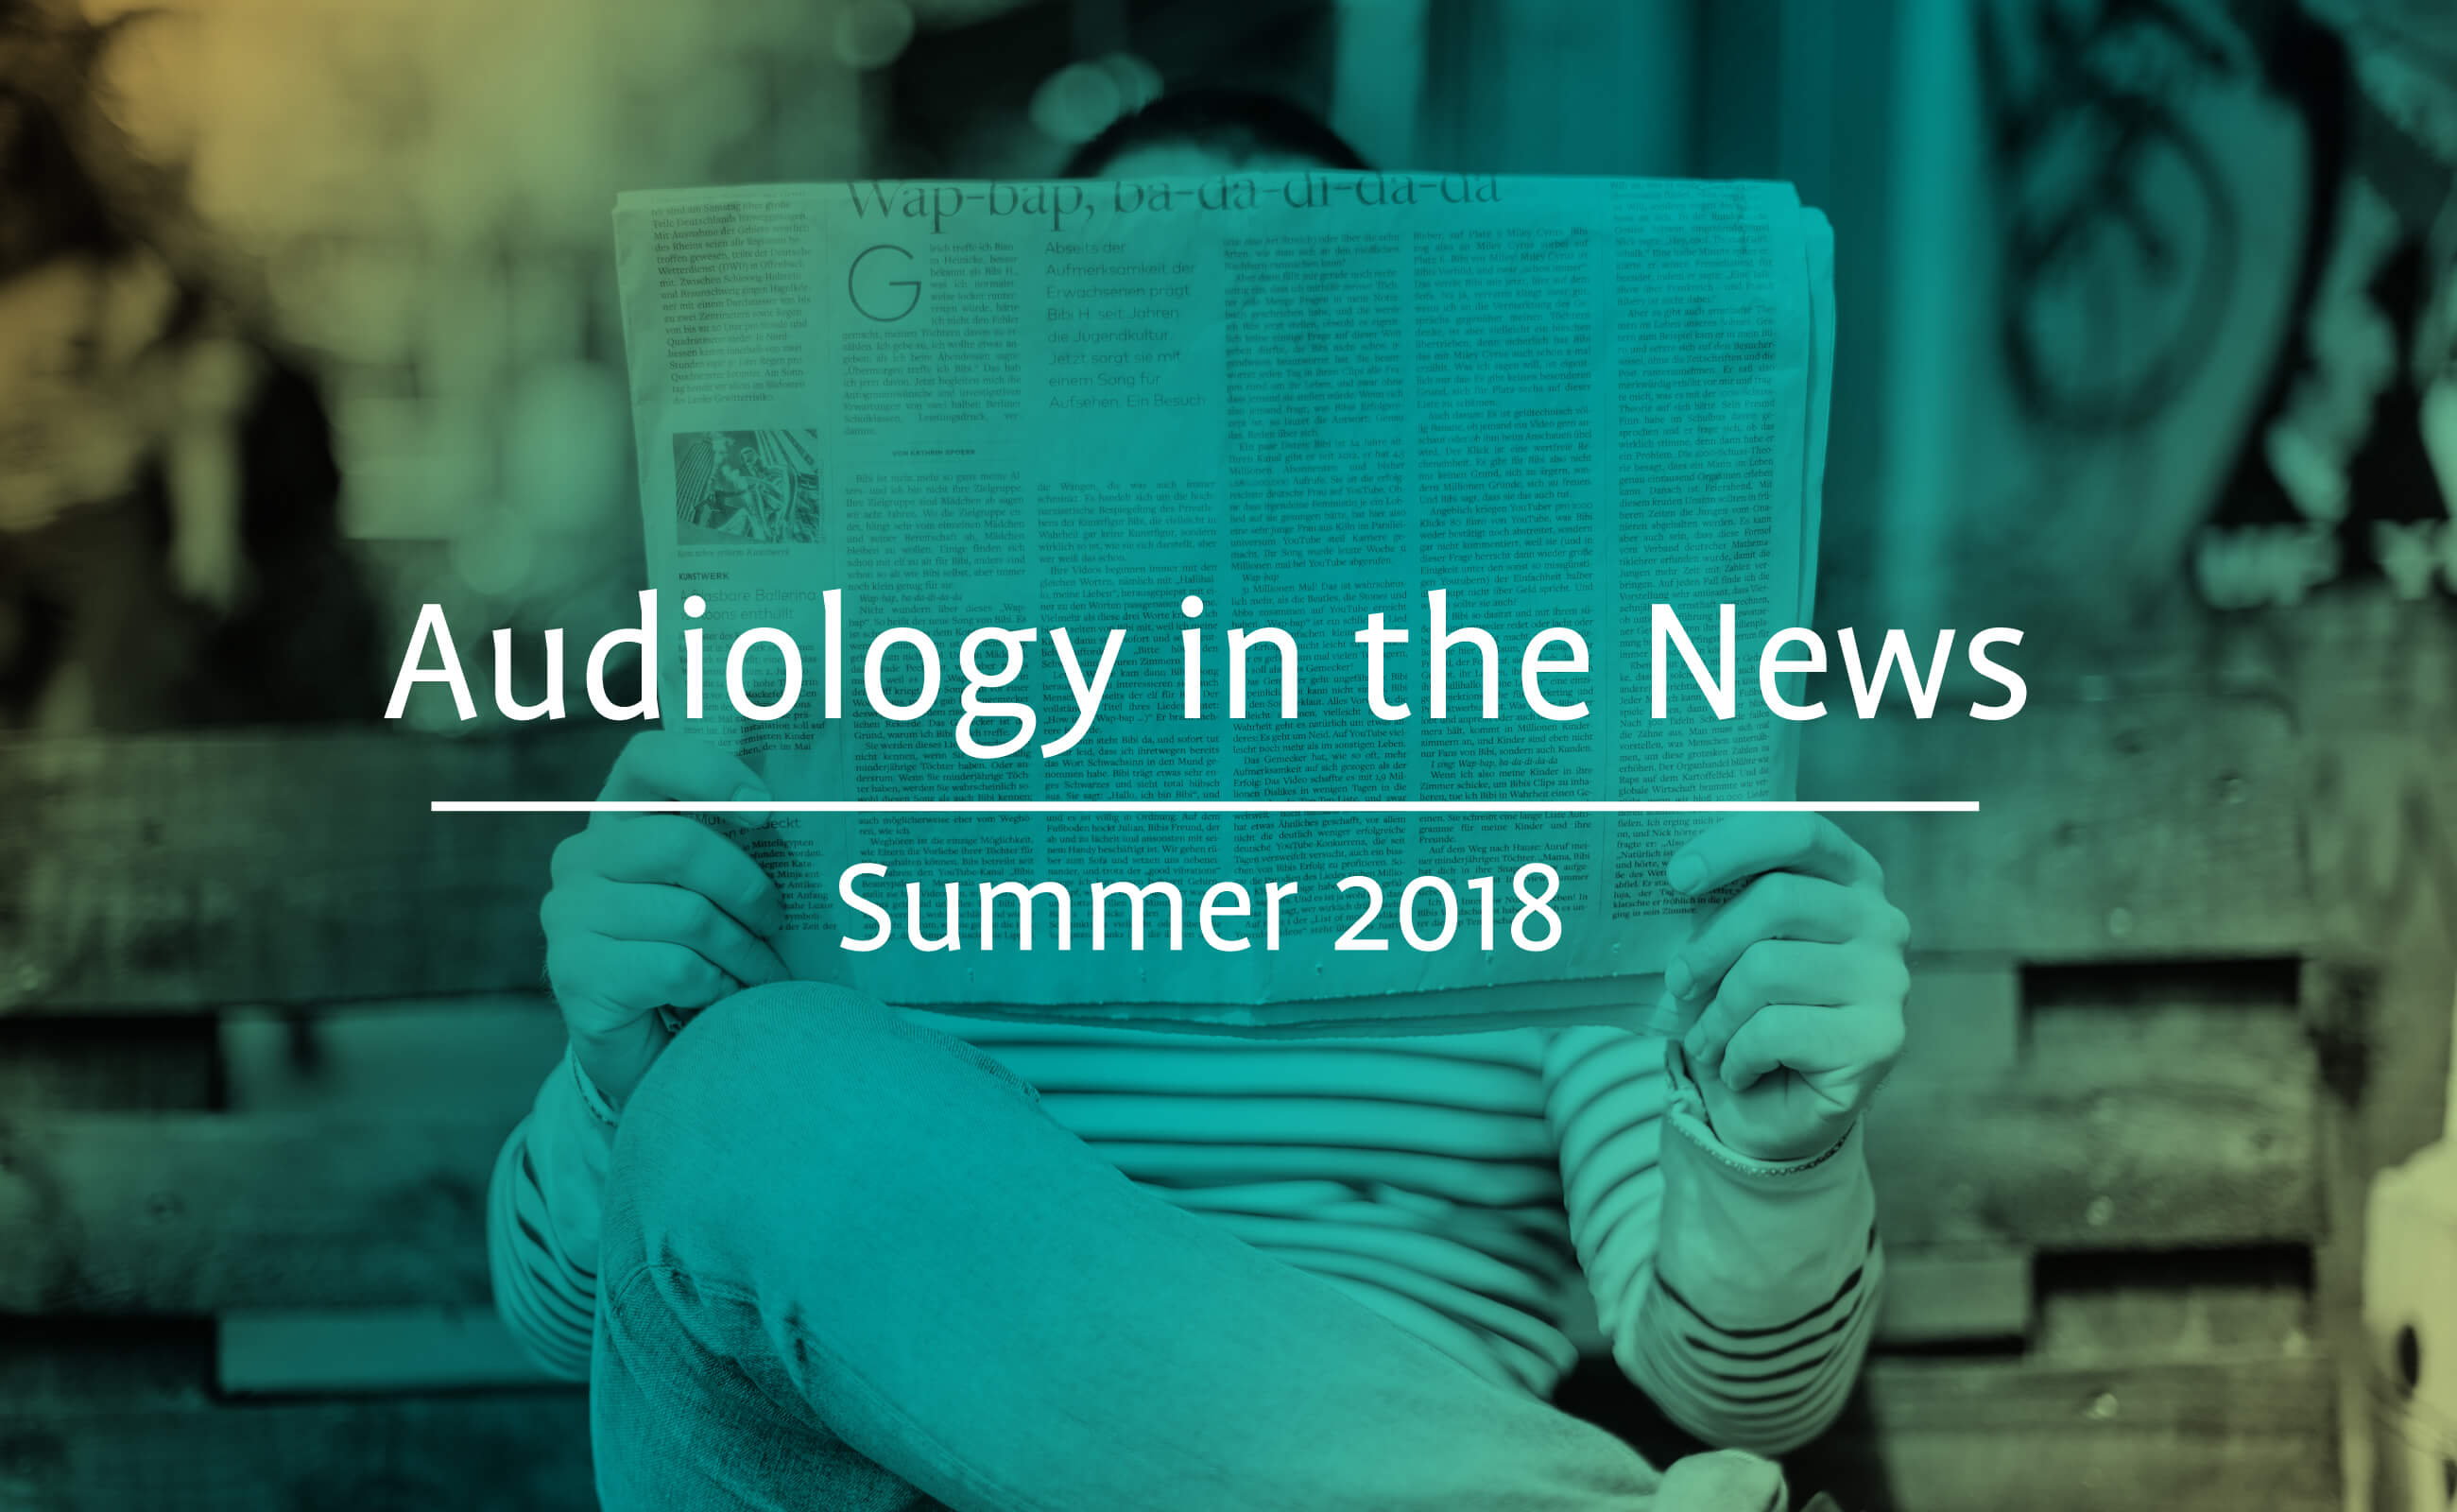 Some of this summers most interesting audiology articles image